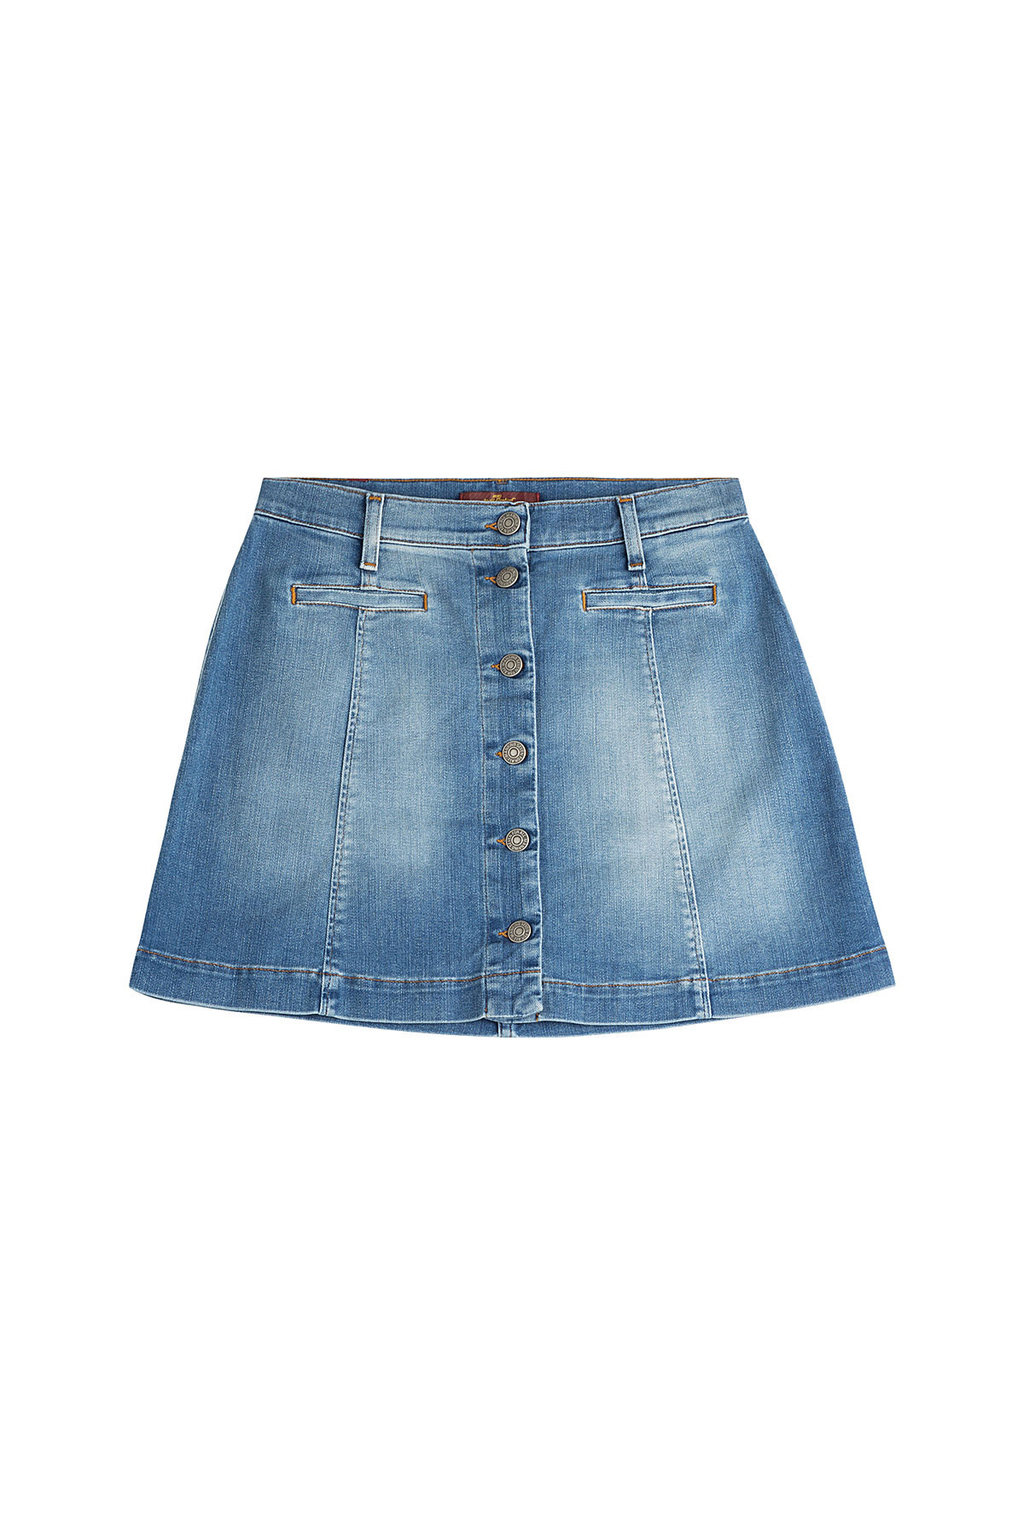 Button Front Jean Skirt - length: mini; pattern: plain; fit: loose/voluminous; waist: mid/regular rise; predominant colour: denim; occasions: casual, creative work; style: a-line; fibres: cotton - 100%; texture group: denim; pattern type: fabric; season: s/s 2016; wardrobe: basic